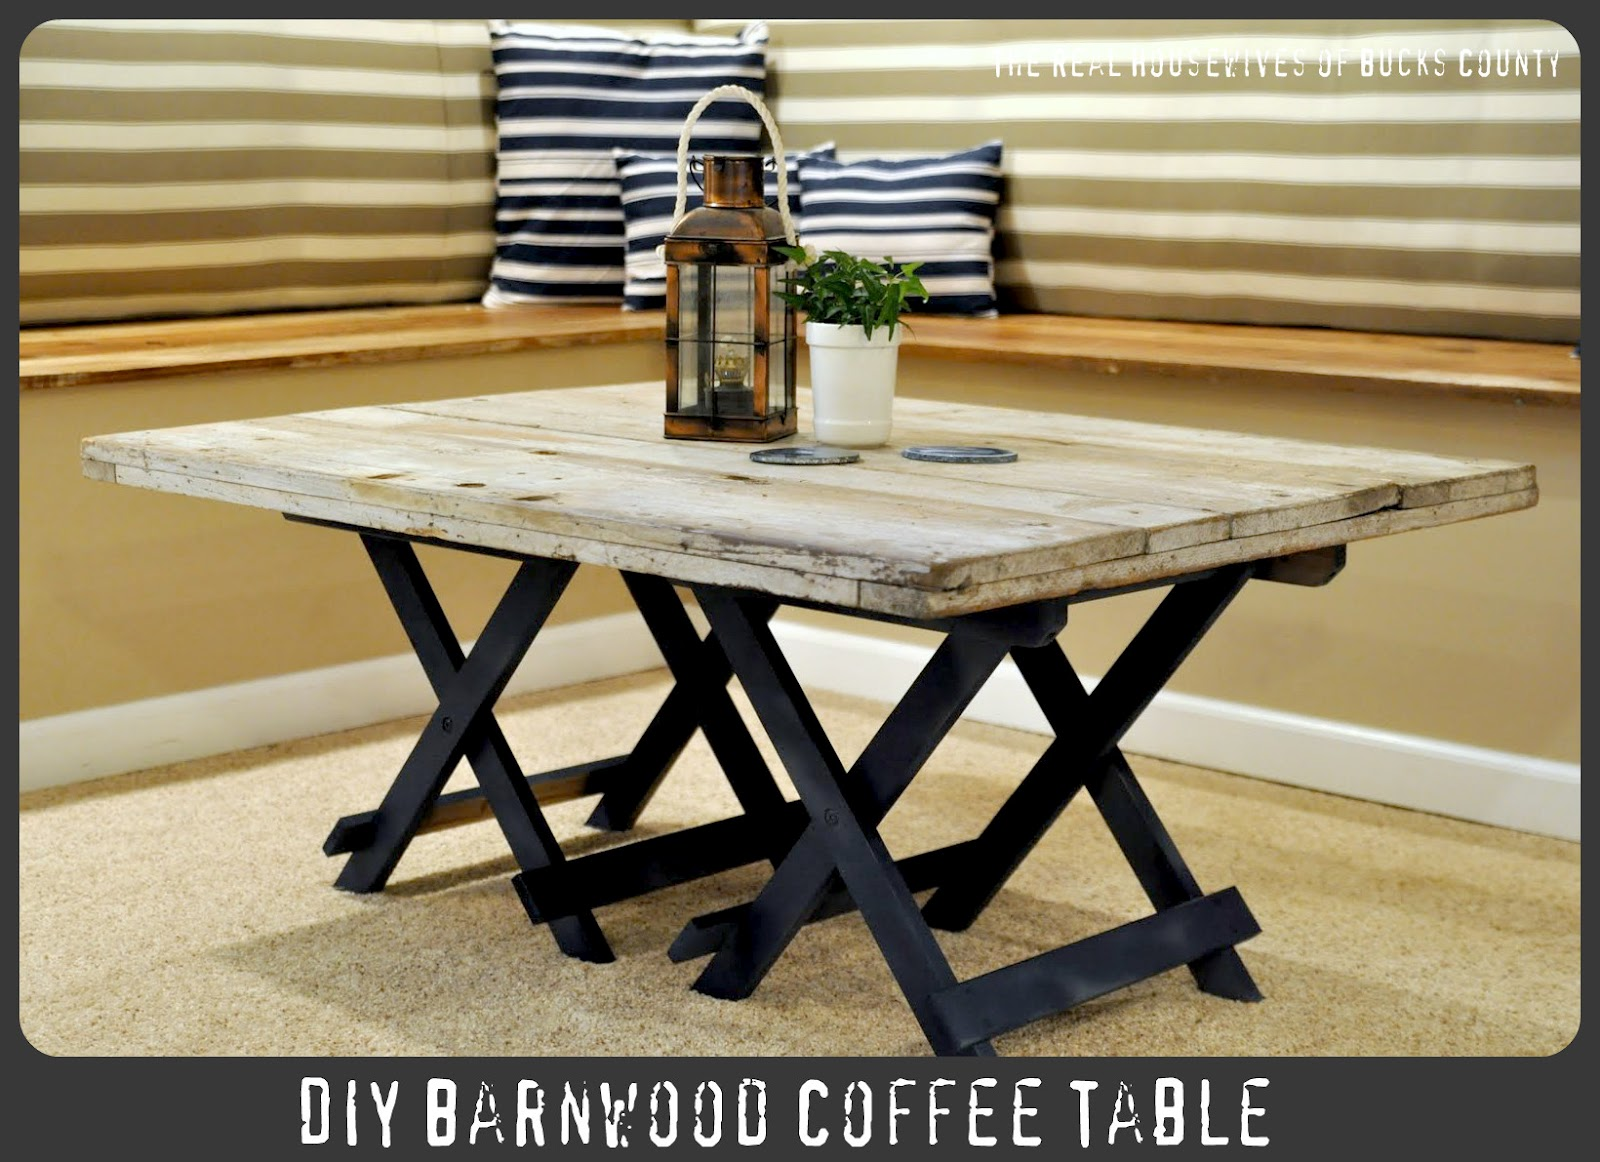 Upcycle wood pallets into a DIY coffee table.